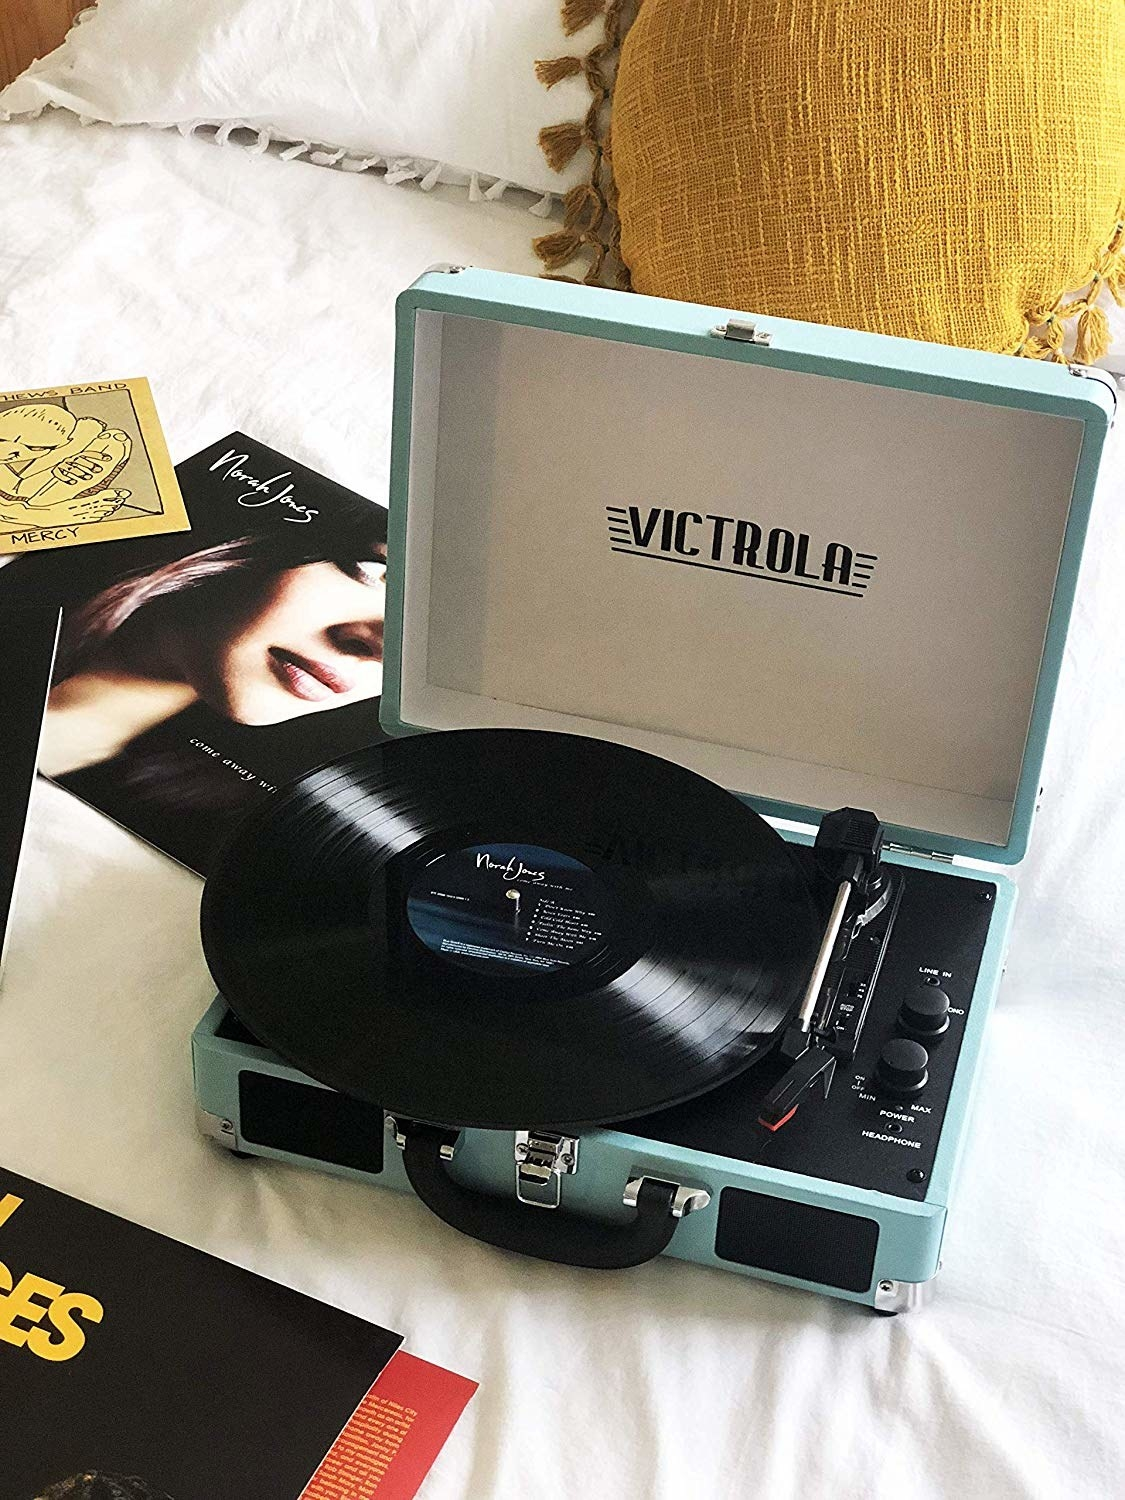 A light blue record player with a norah jones record on it